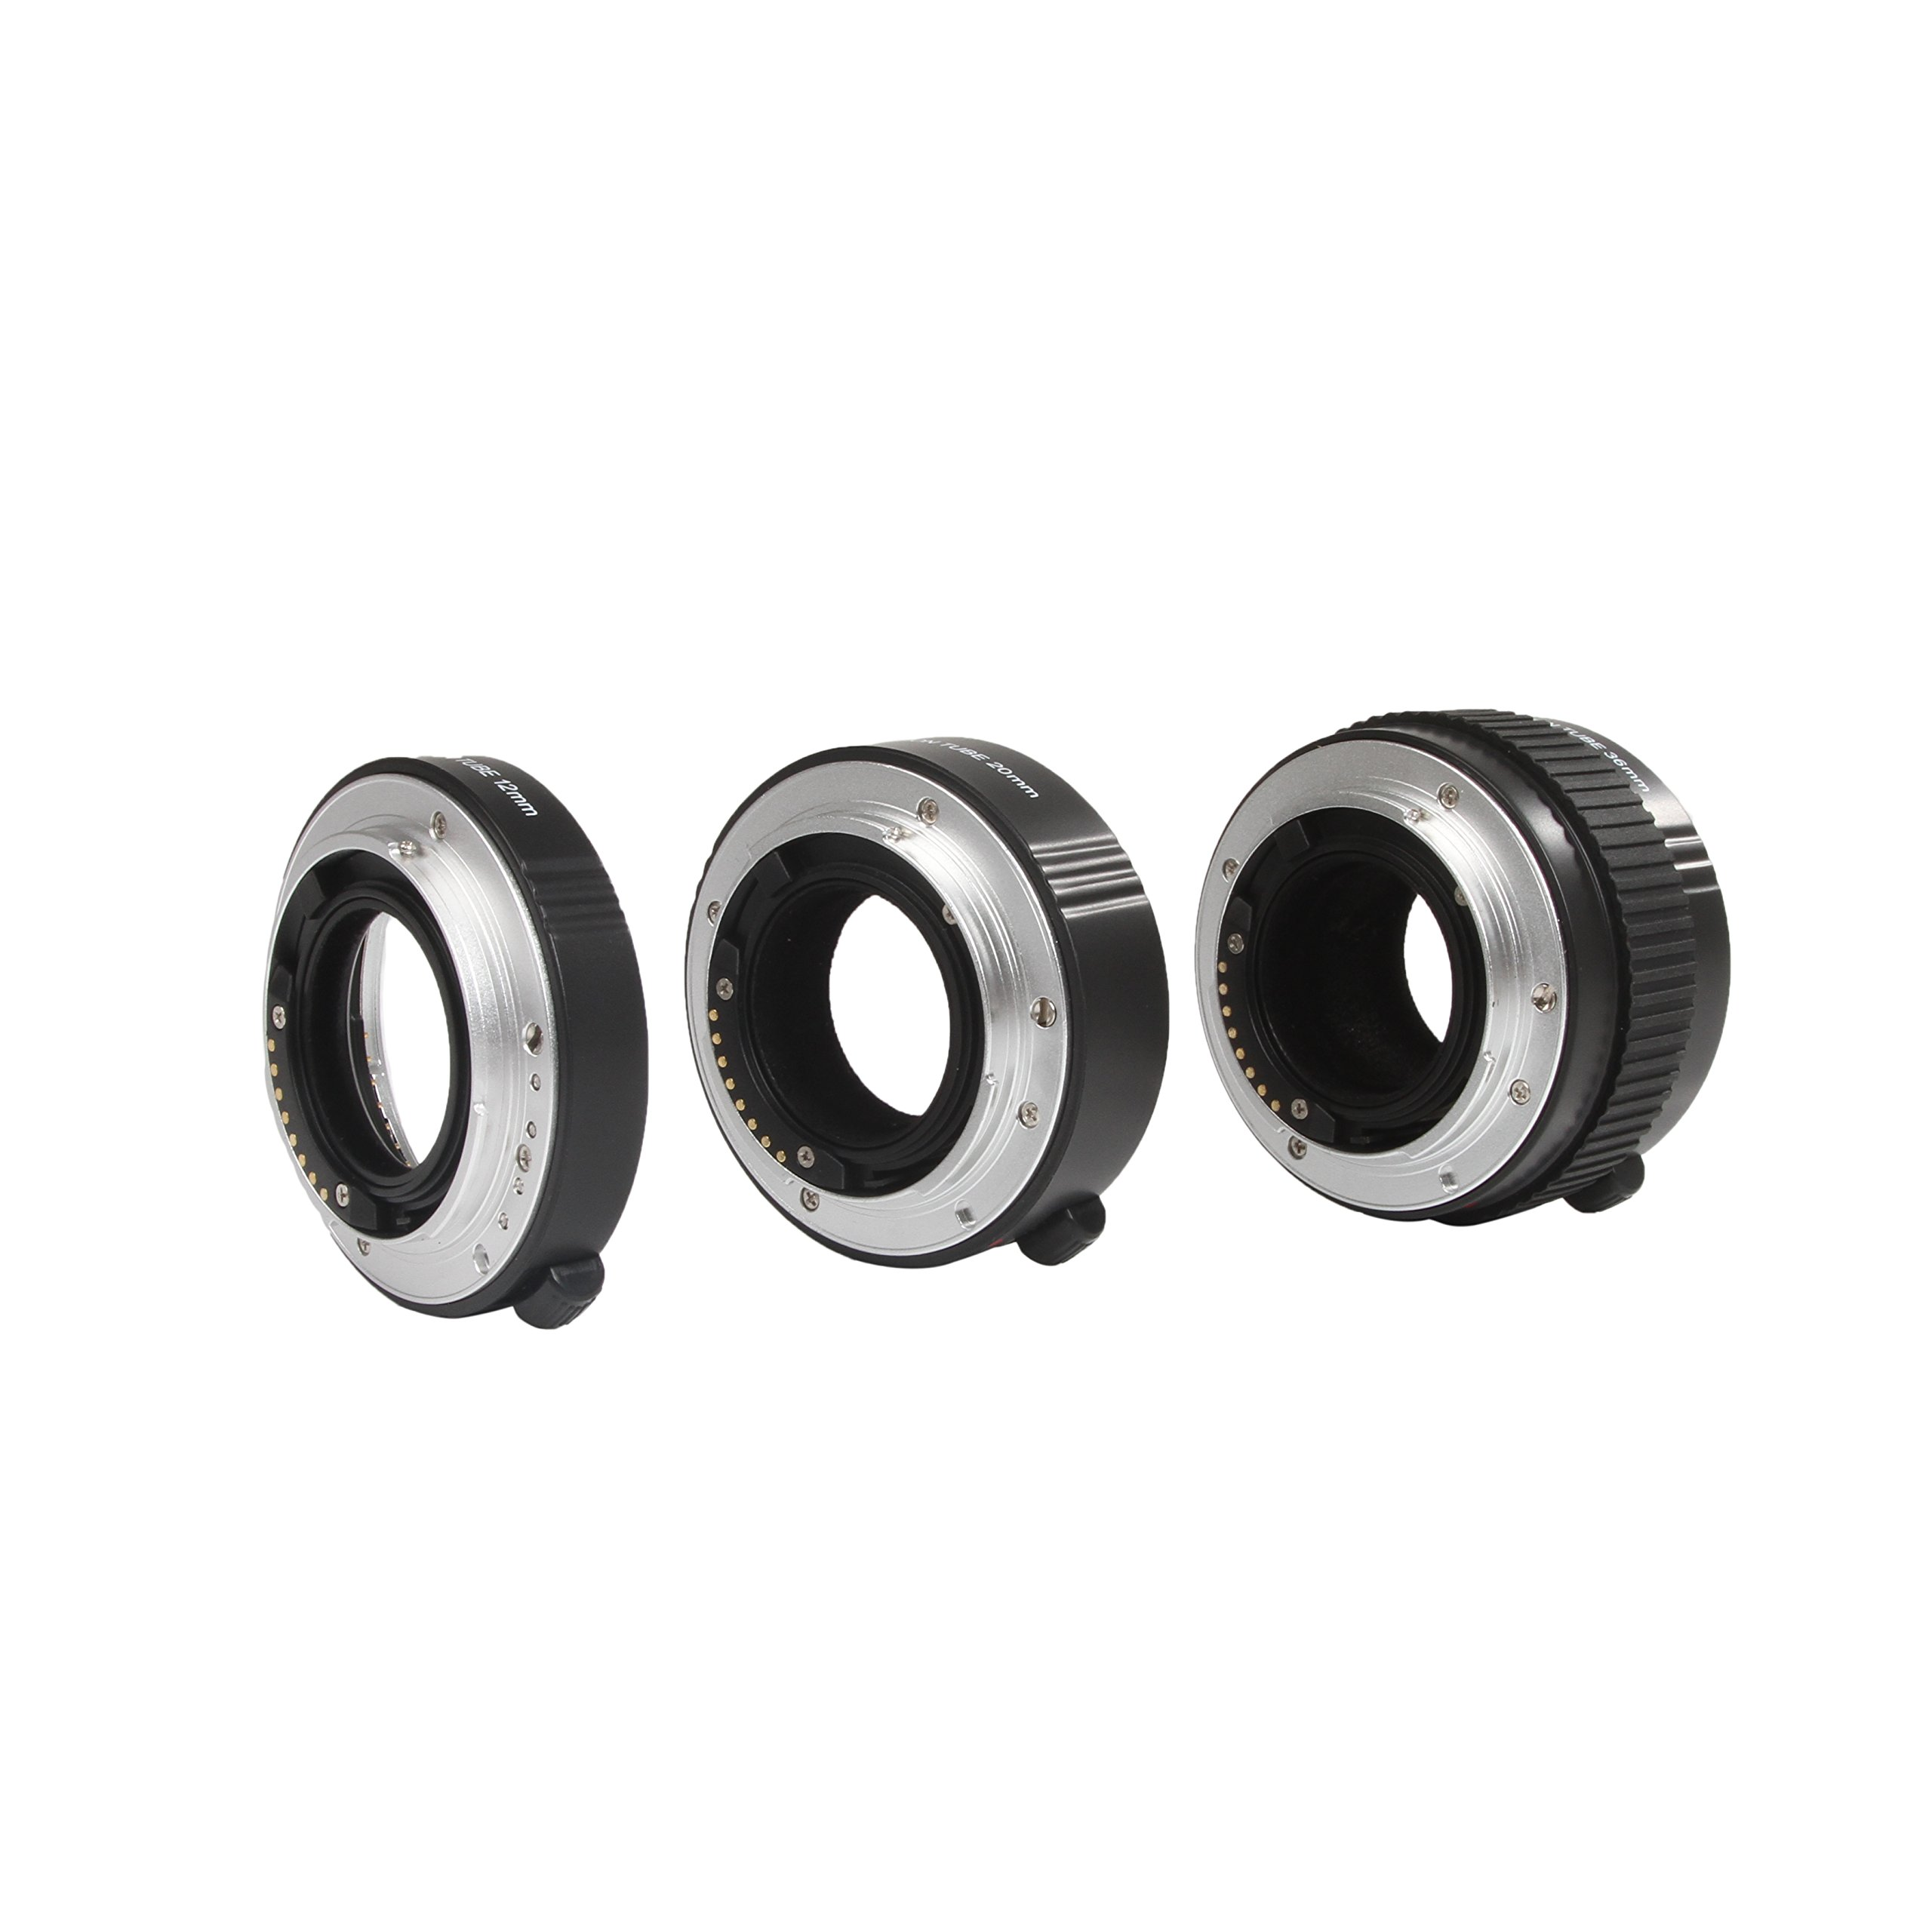 Movo Photo AF Macro Extension Tube Set for Sony Alpha DSLR Camera with 12mm, 20mm and 36mm Tubes (Metal Mount) by Movo